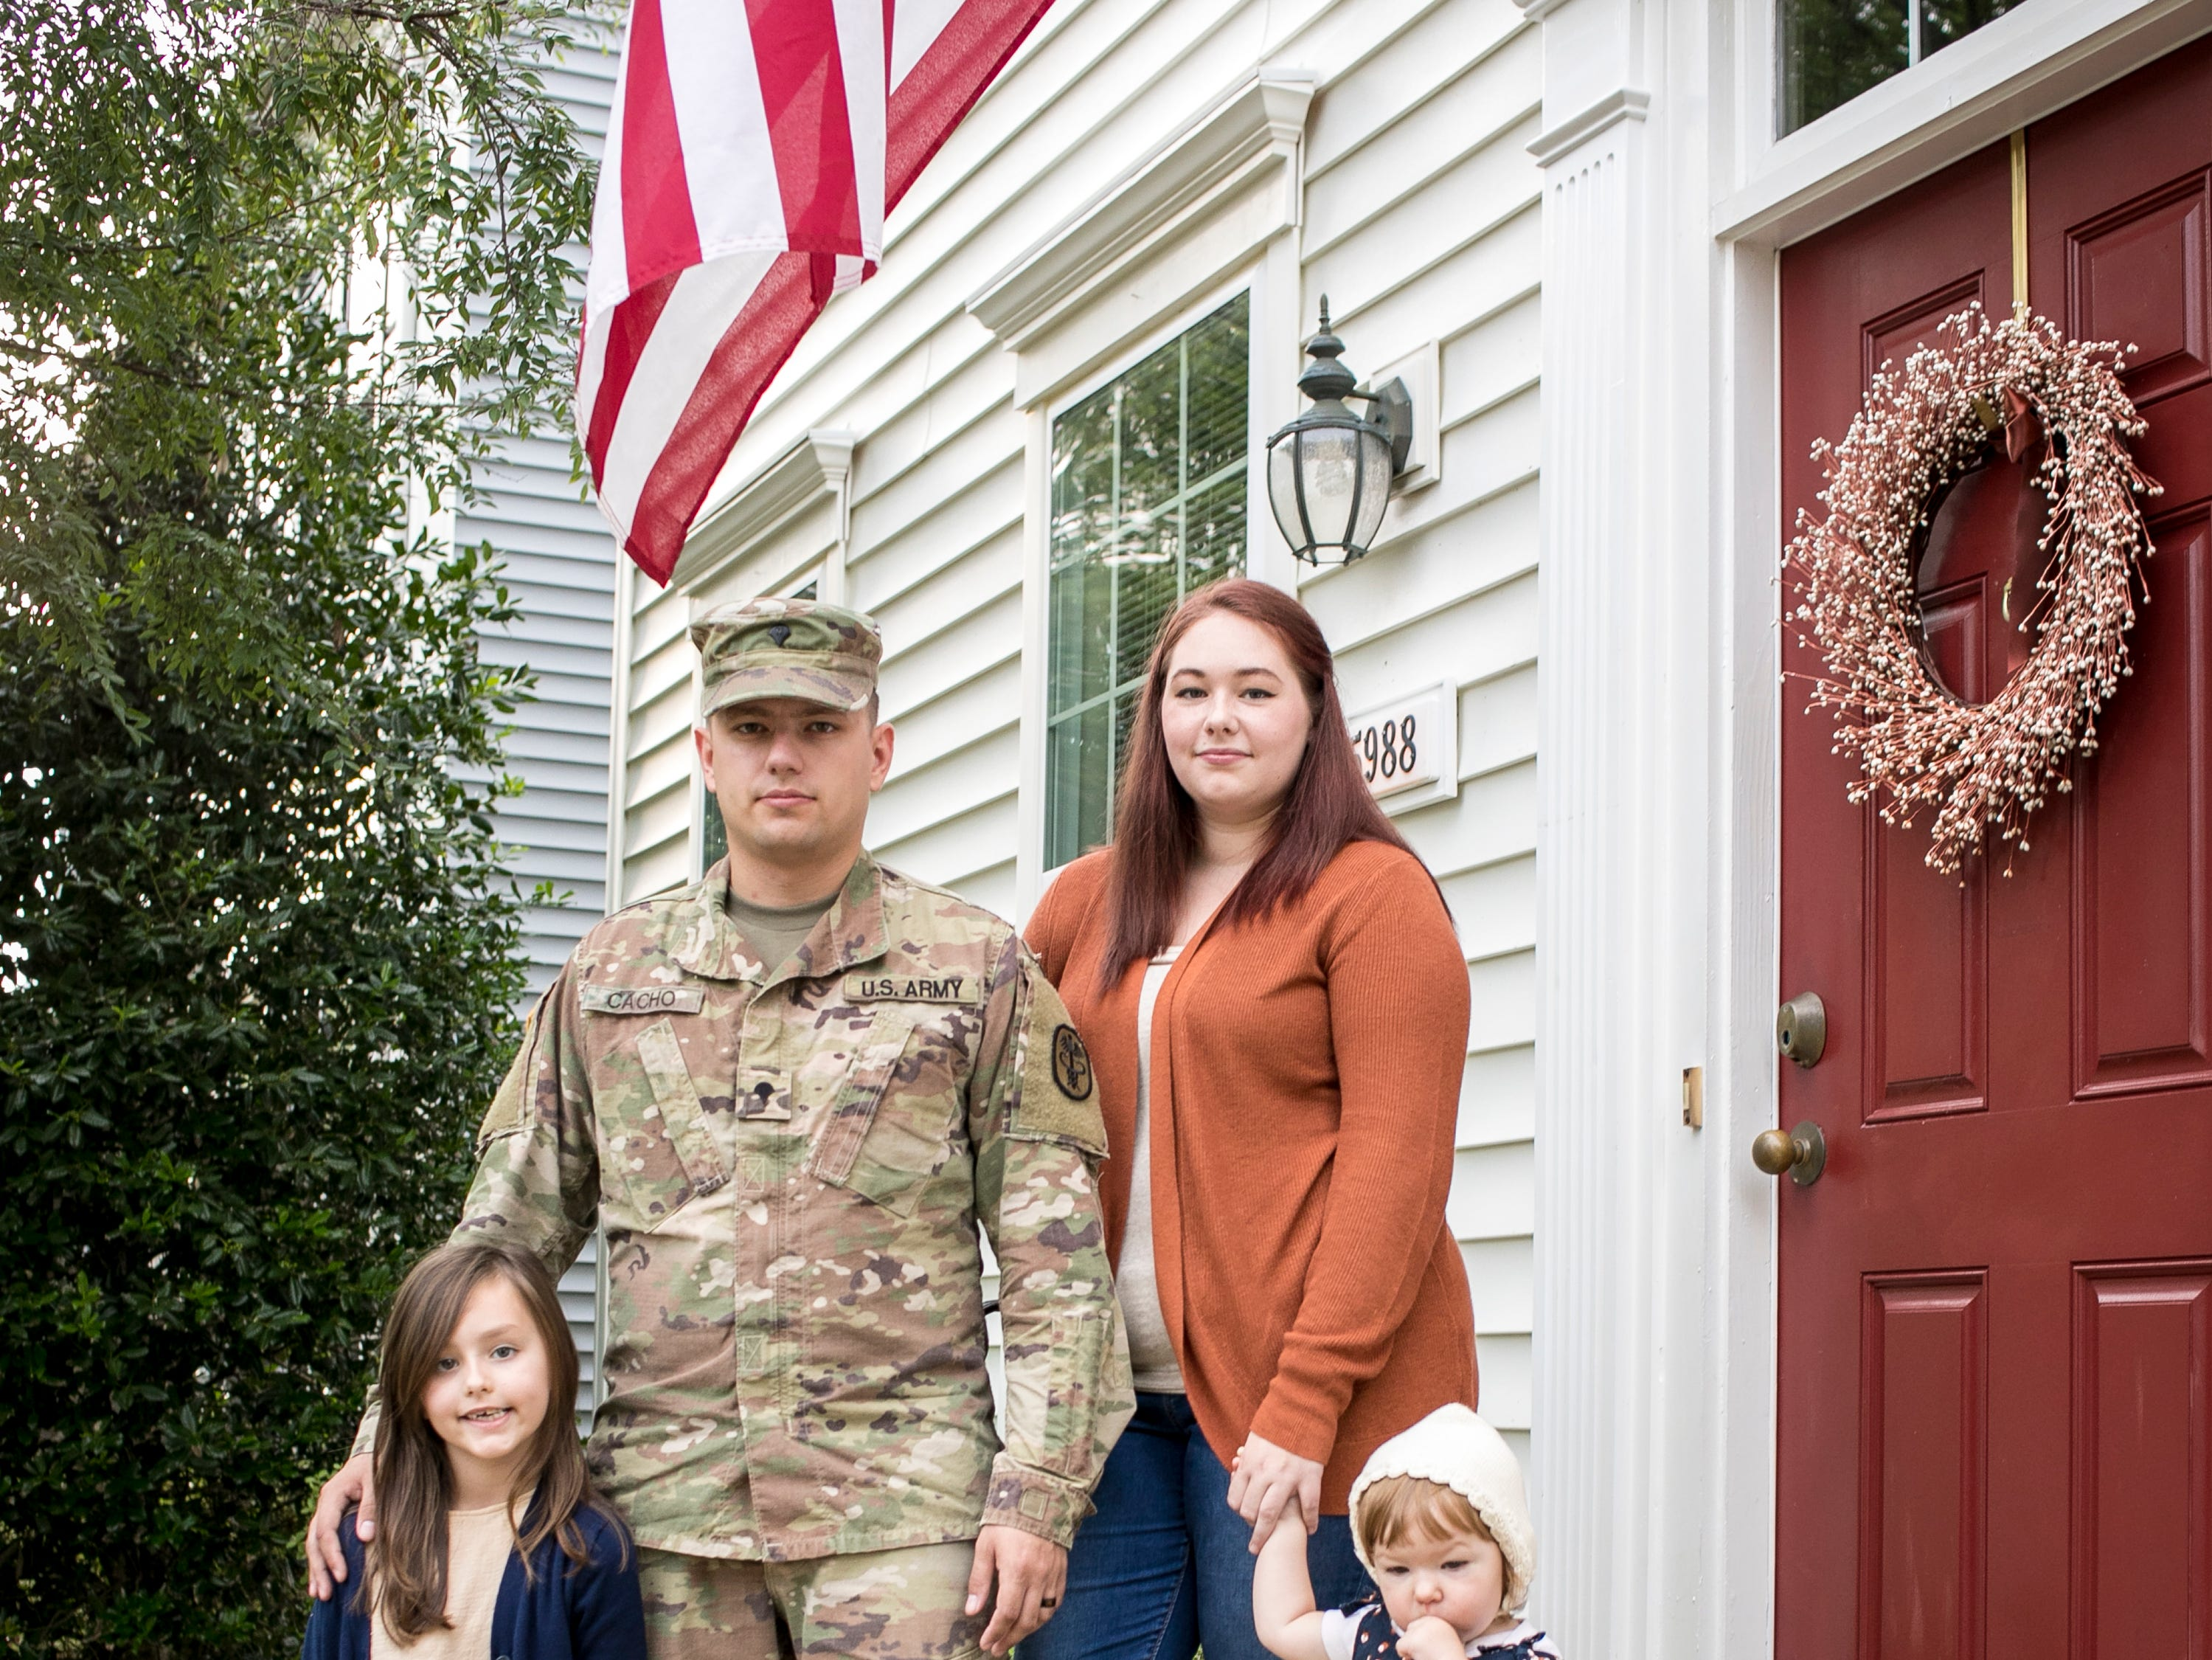 Specialist Christopher Cacho and his wife, Andrea, at Ft. Belvoir with their daughters, Edith, 19 months, and Lea, 7, on Tuesday, September 4, 2018. The Cachos had a terrible experience with a move from Ft. Campbell to Ft. Belvoir back in July. Many of their pieces of furniture were scratched and damaged. Books had water damage, including a family Bible. But the worst may have been the wedding rings that disappeared.